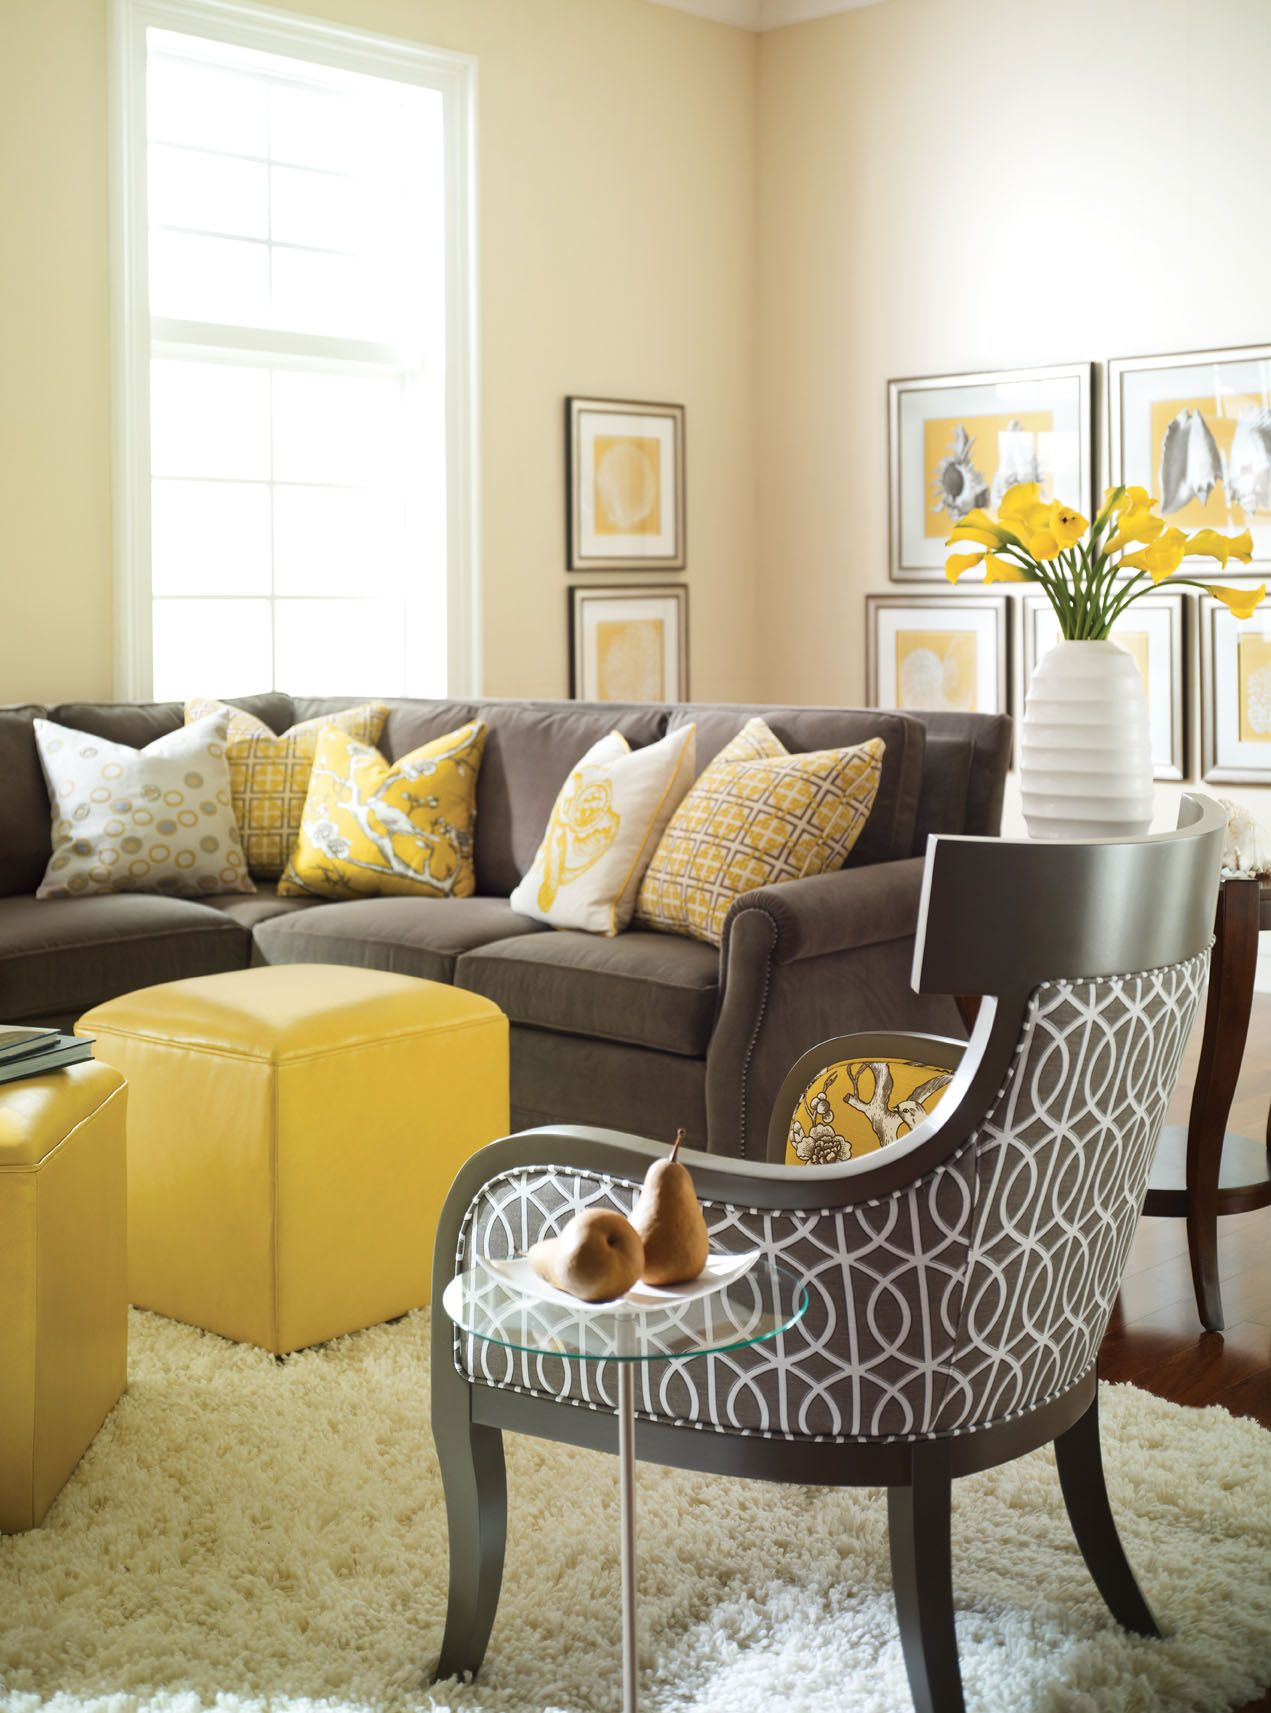 Images Of Living Rooms With Gray Couches Accent Chairs For Room Arms Tissus D Ameublement Belles Idees Pour Renover L Interieur Home Yellow Love This Color Scheme Thanks To Meredith Mccarthy Kokoski